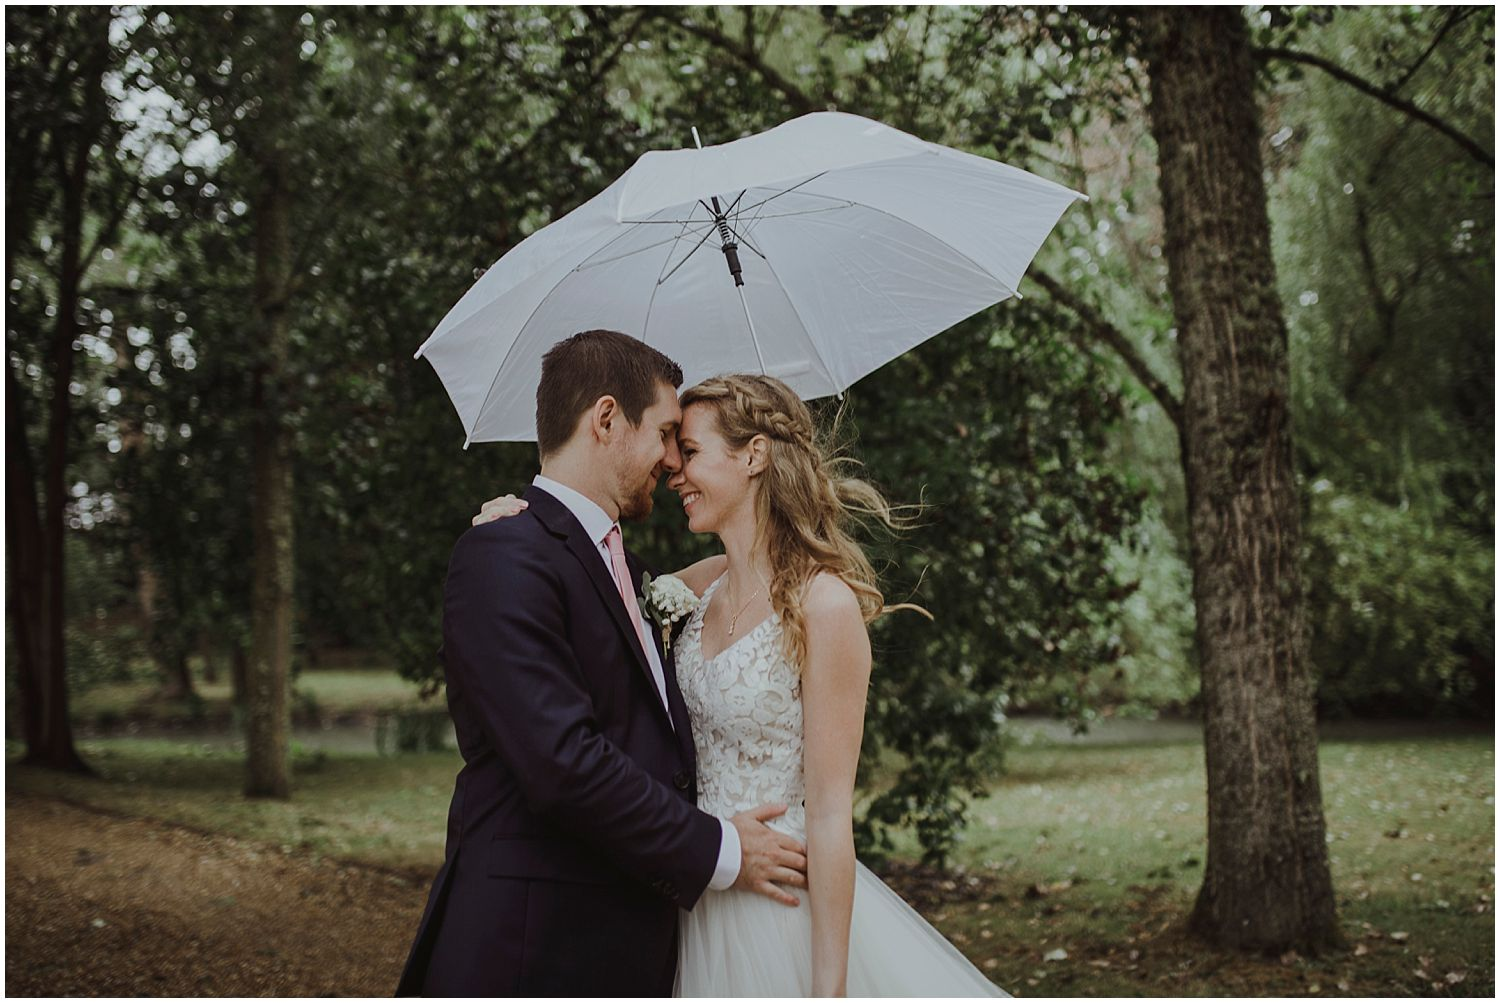 Vikki: Catherine's (makeup artist) did a great job and we loved our natural makeup which stayed in place for the whole reception, even with the rain! Our hair was done by Catherine and her colleague Poppy.